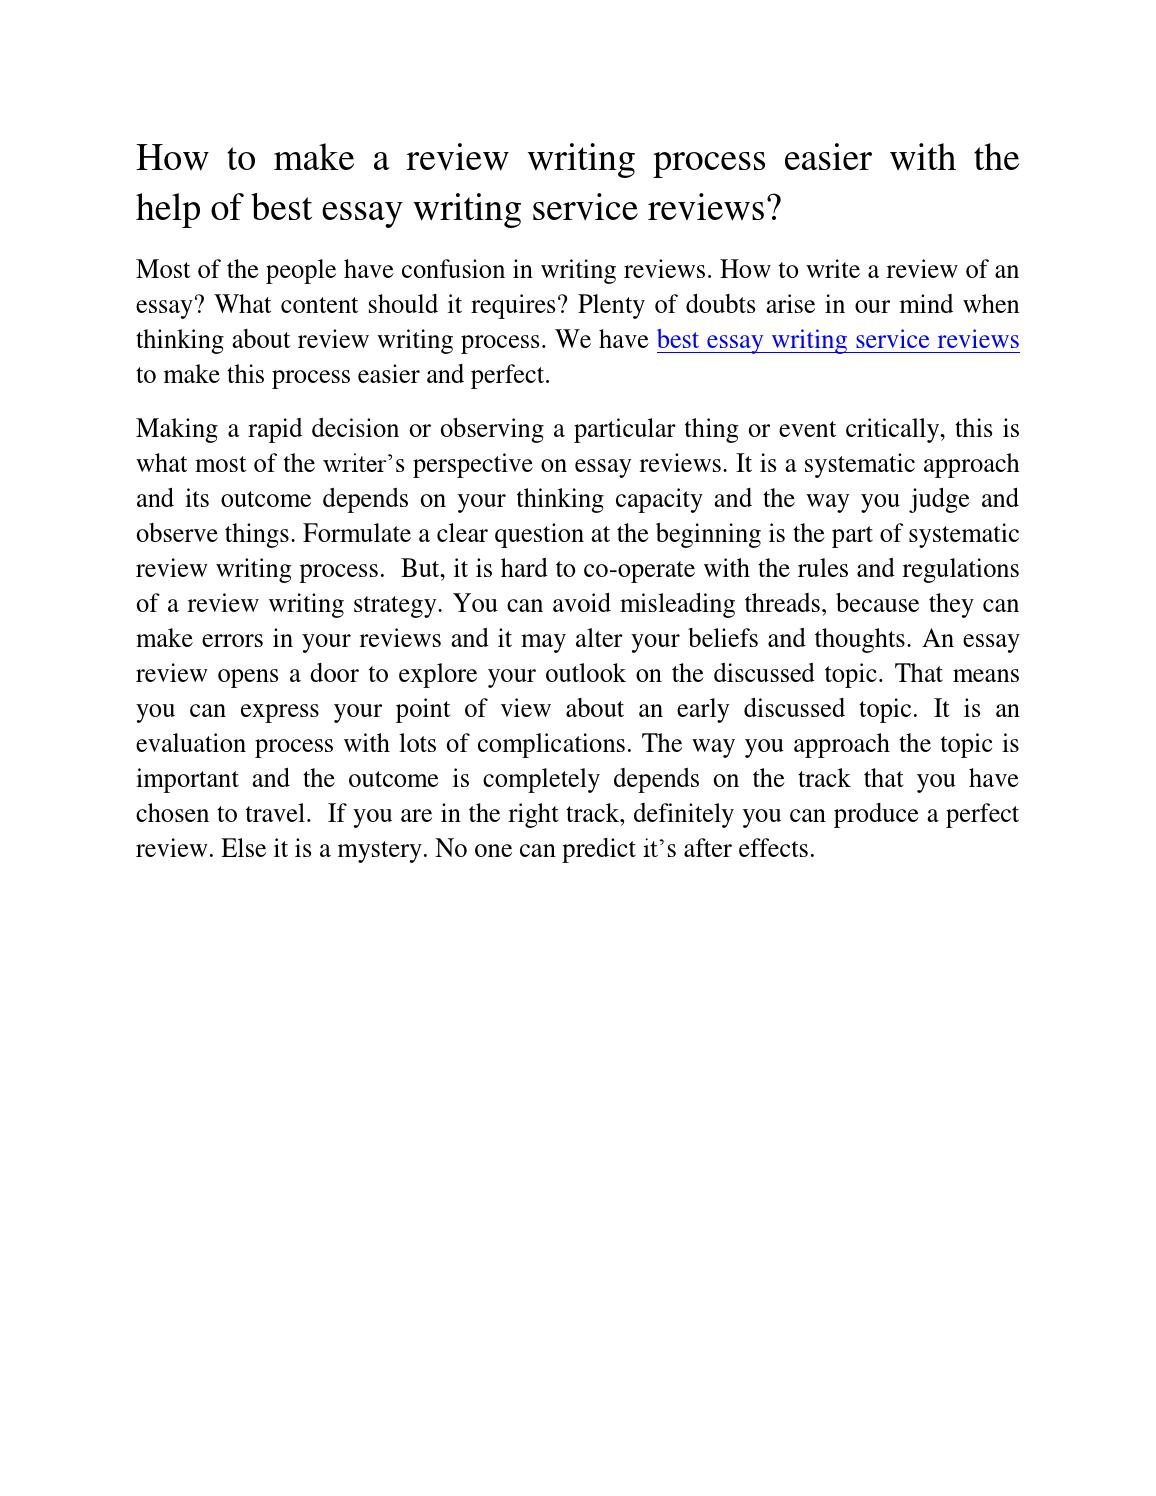 Technical writer kelly services